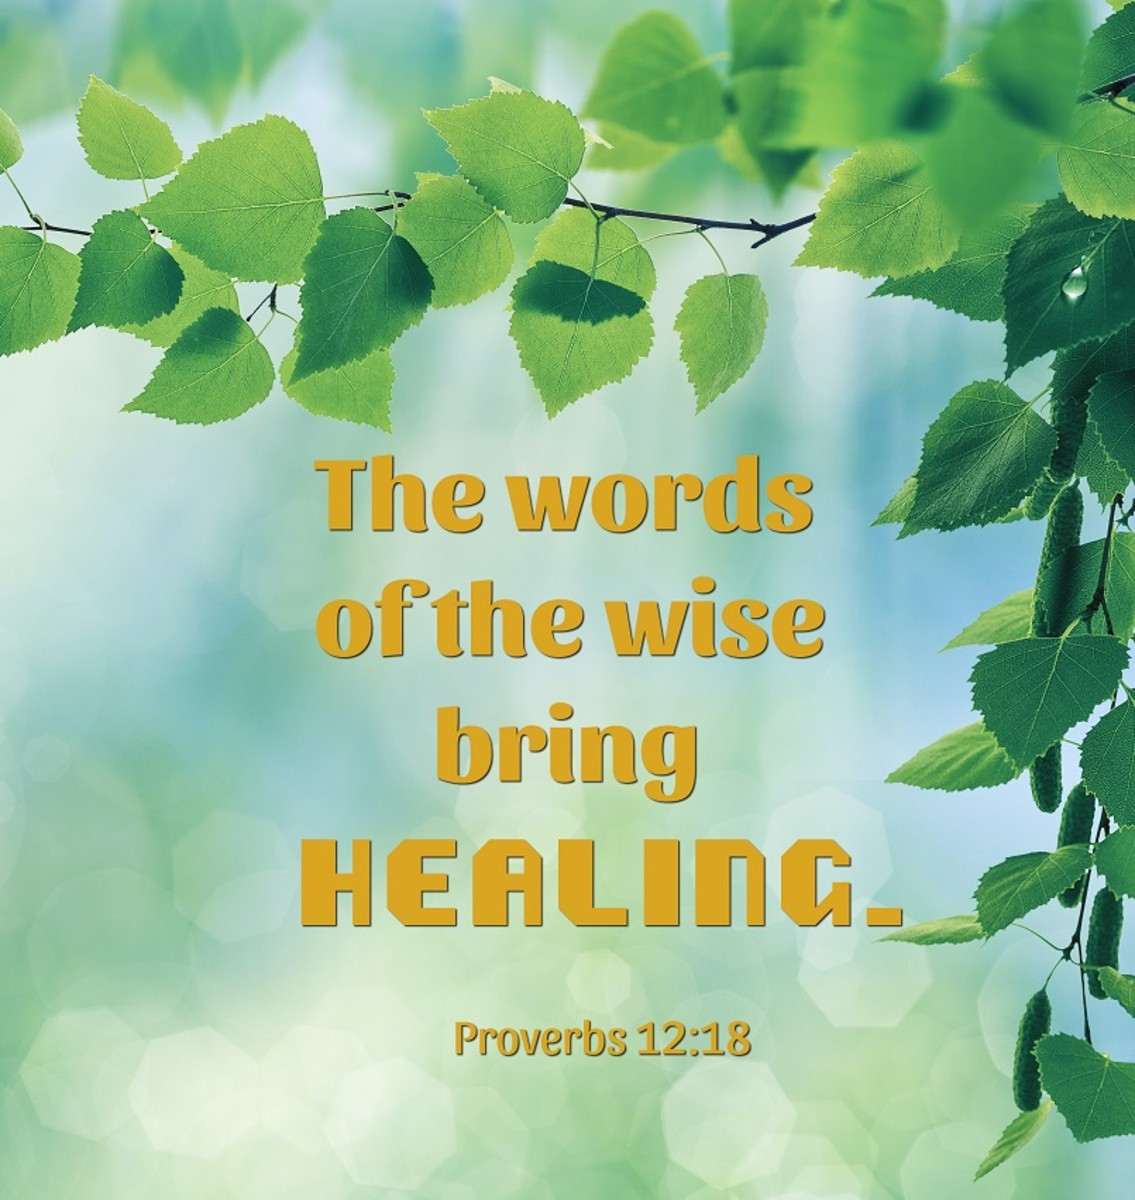 The words of the wise bring healing..